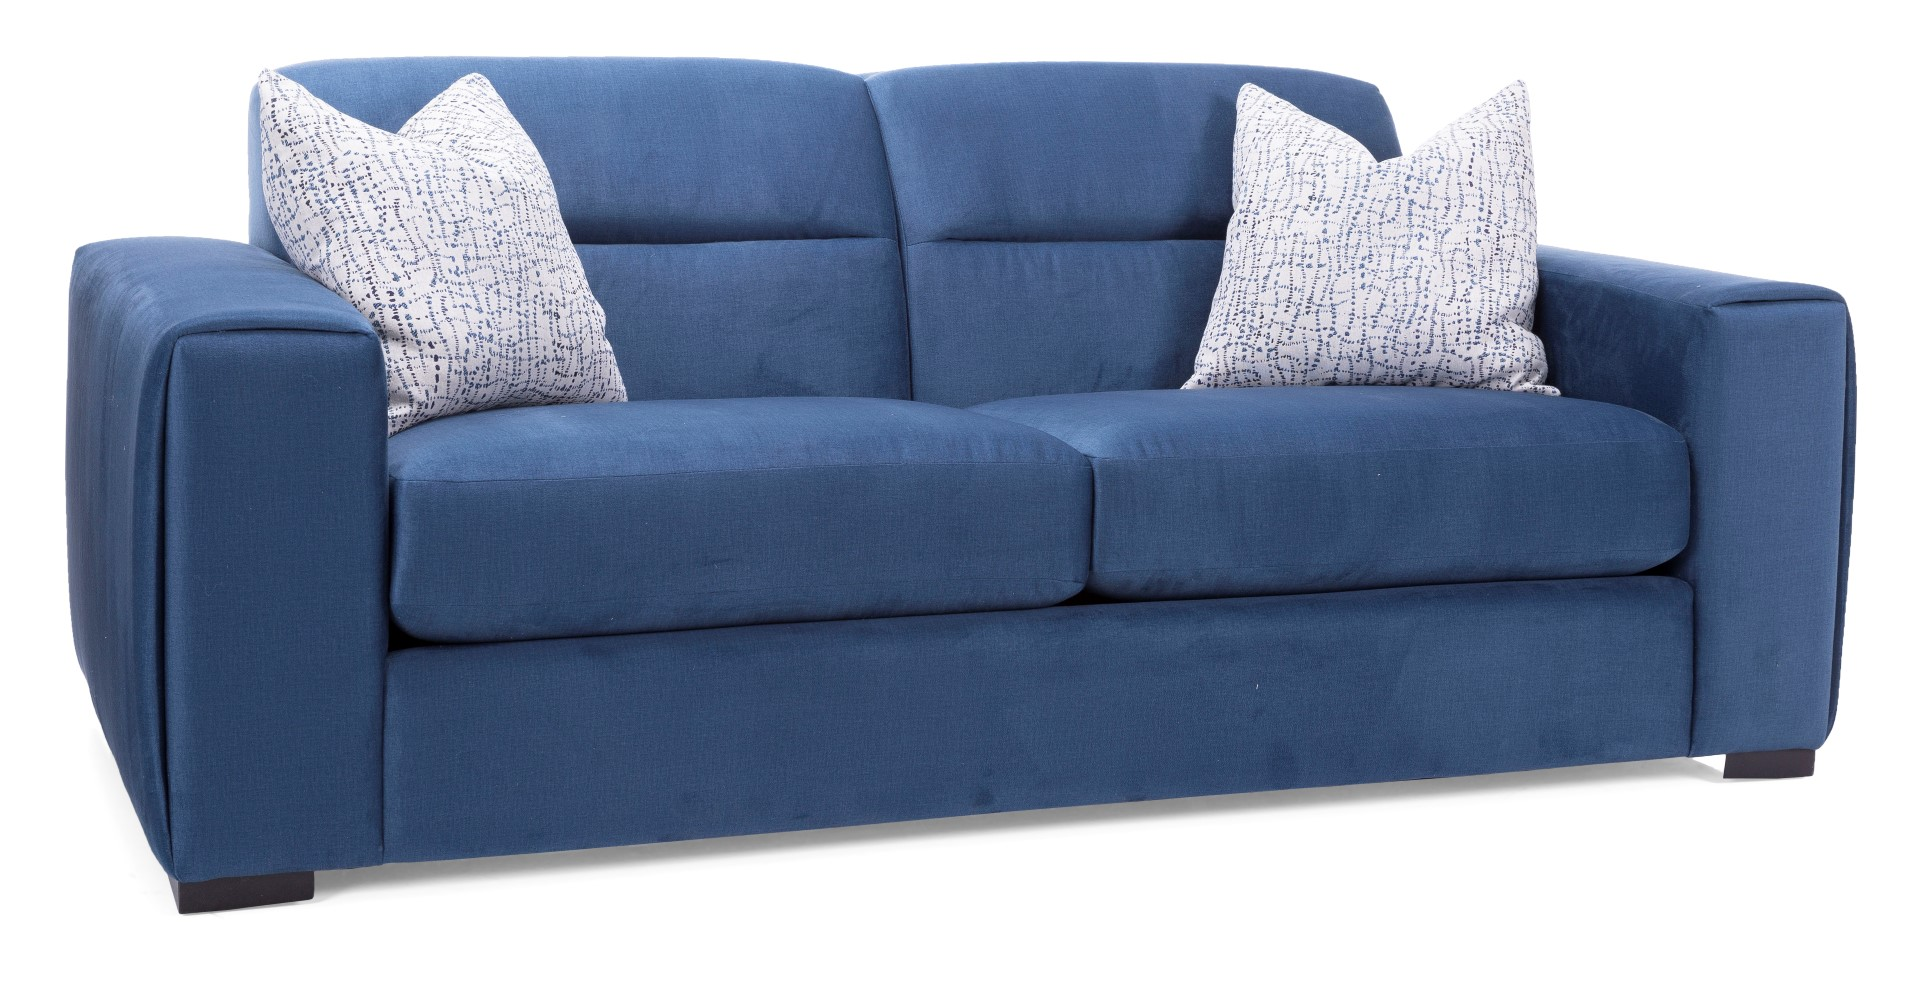 Sofas you sofa bed yes ultimate sofa bed ultimate sofa for Ultimate sofa bed